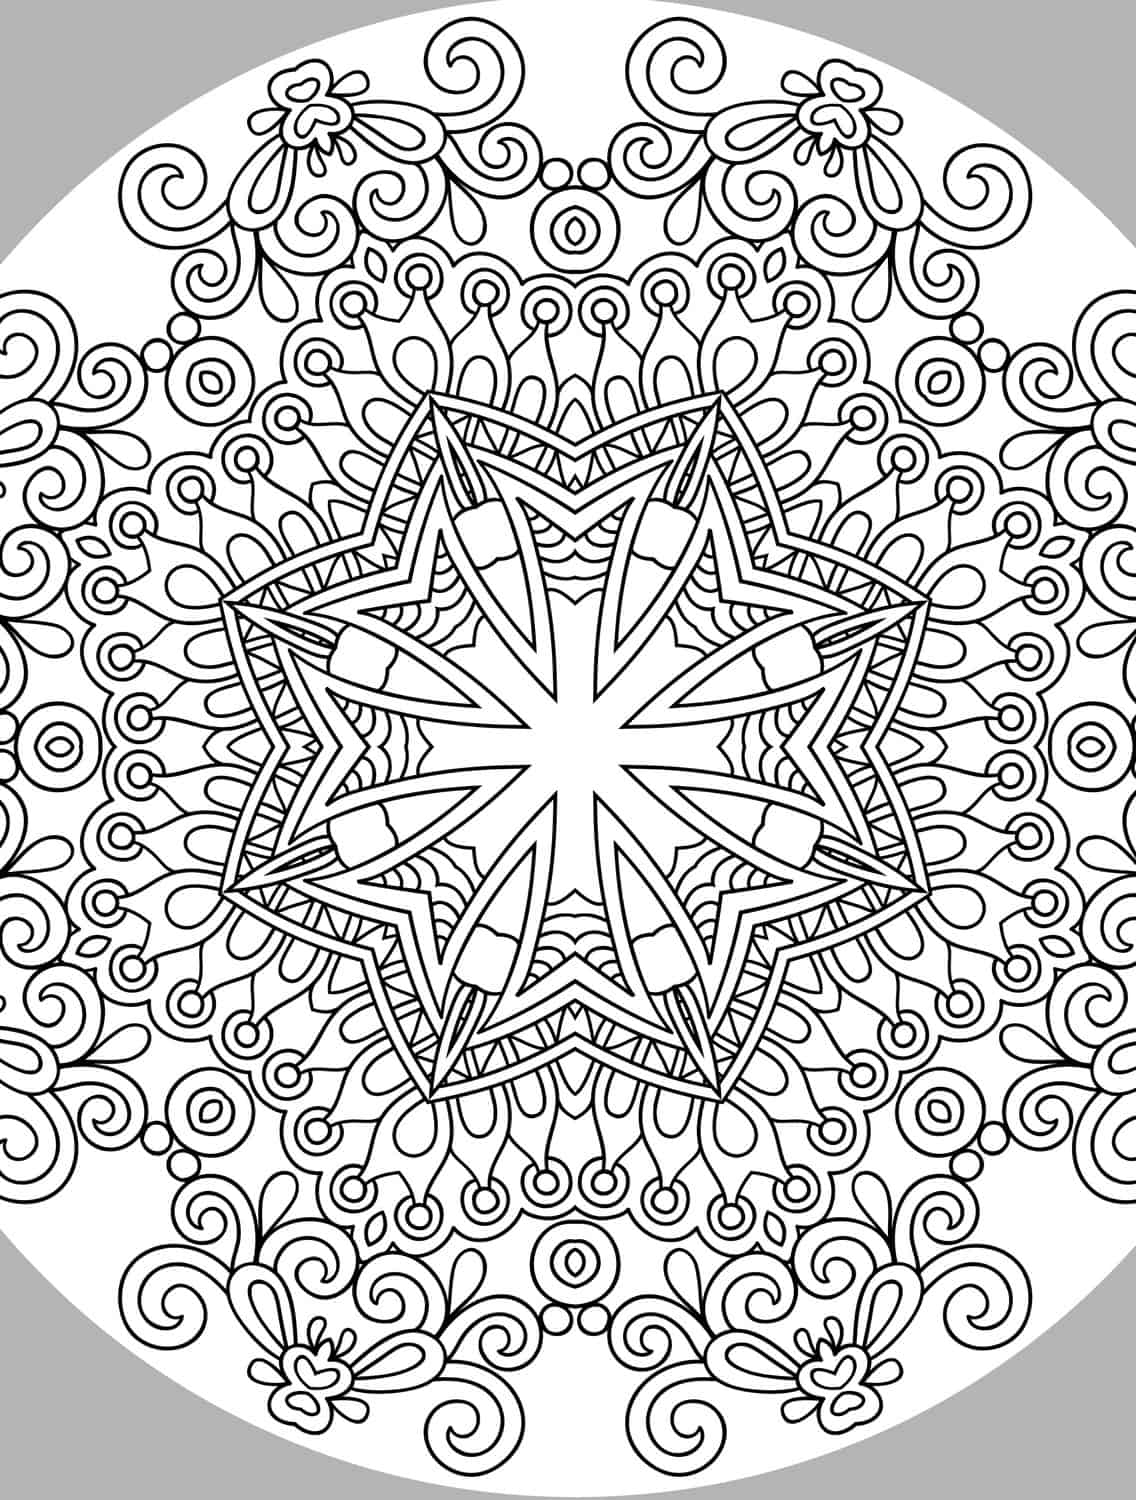 Genoeg 10 Free Printable Holiday Adult Coloring Pages @AZ99